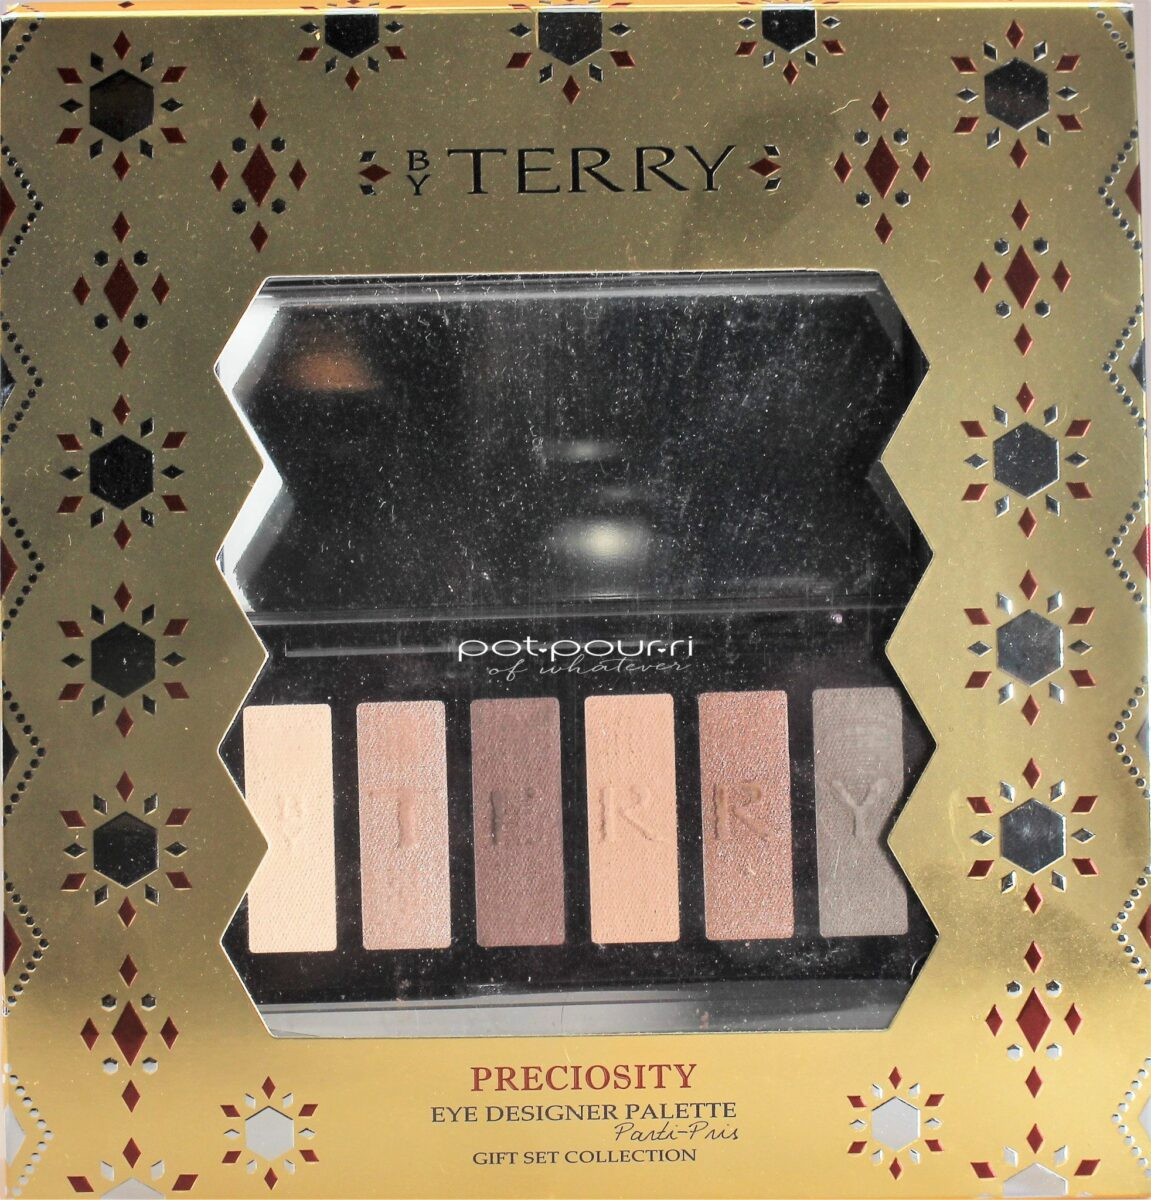 Preciosity Eye Designer Palette gift packaging